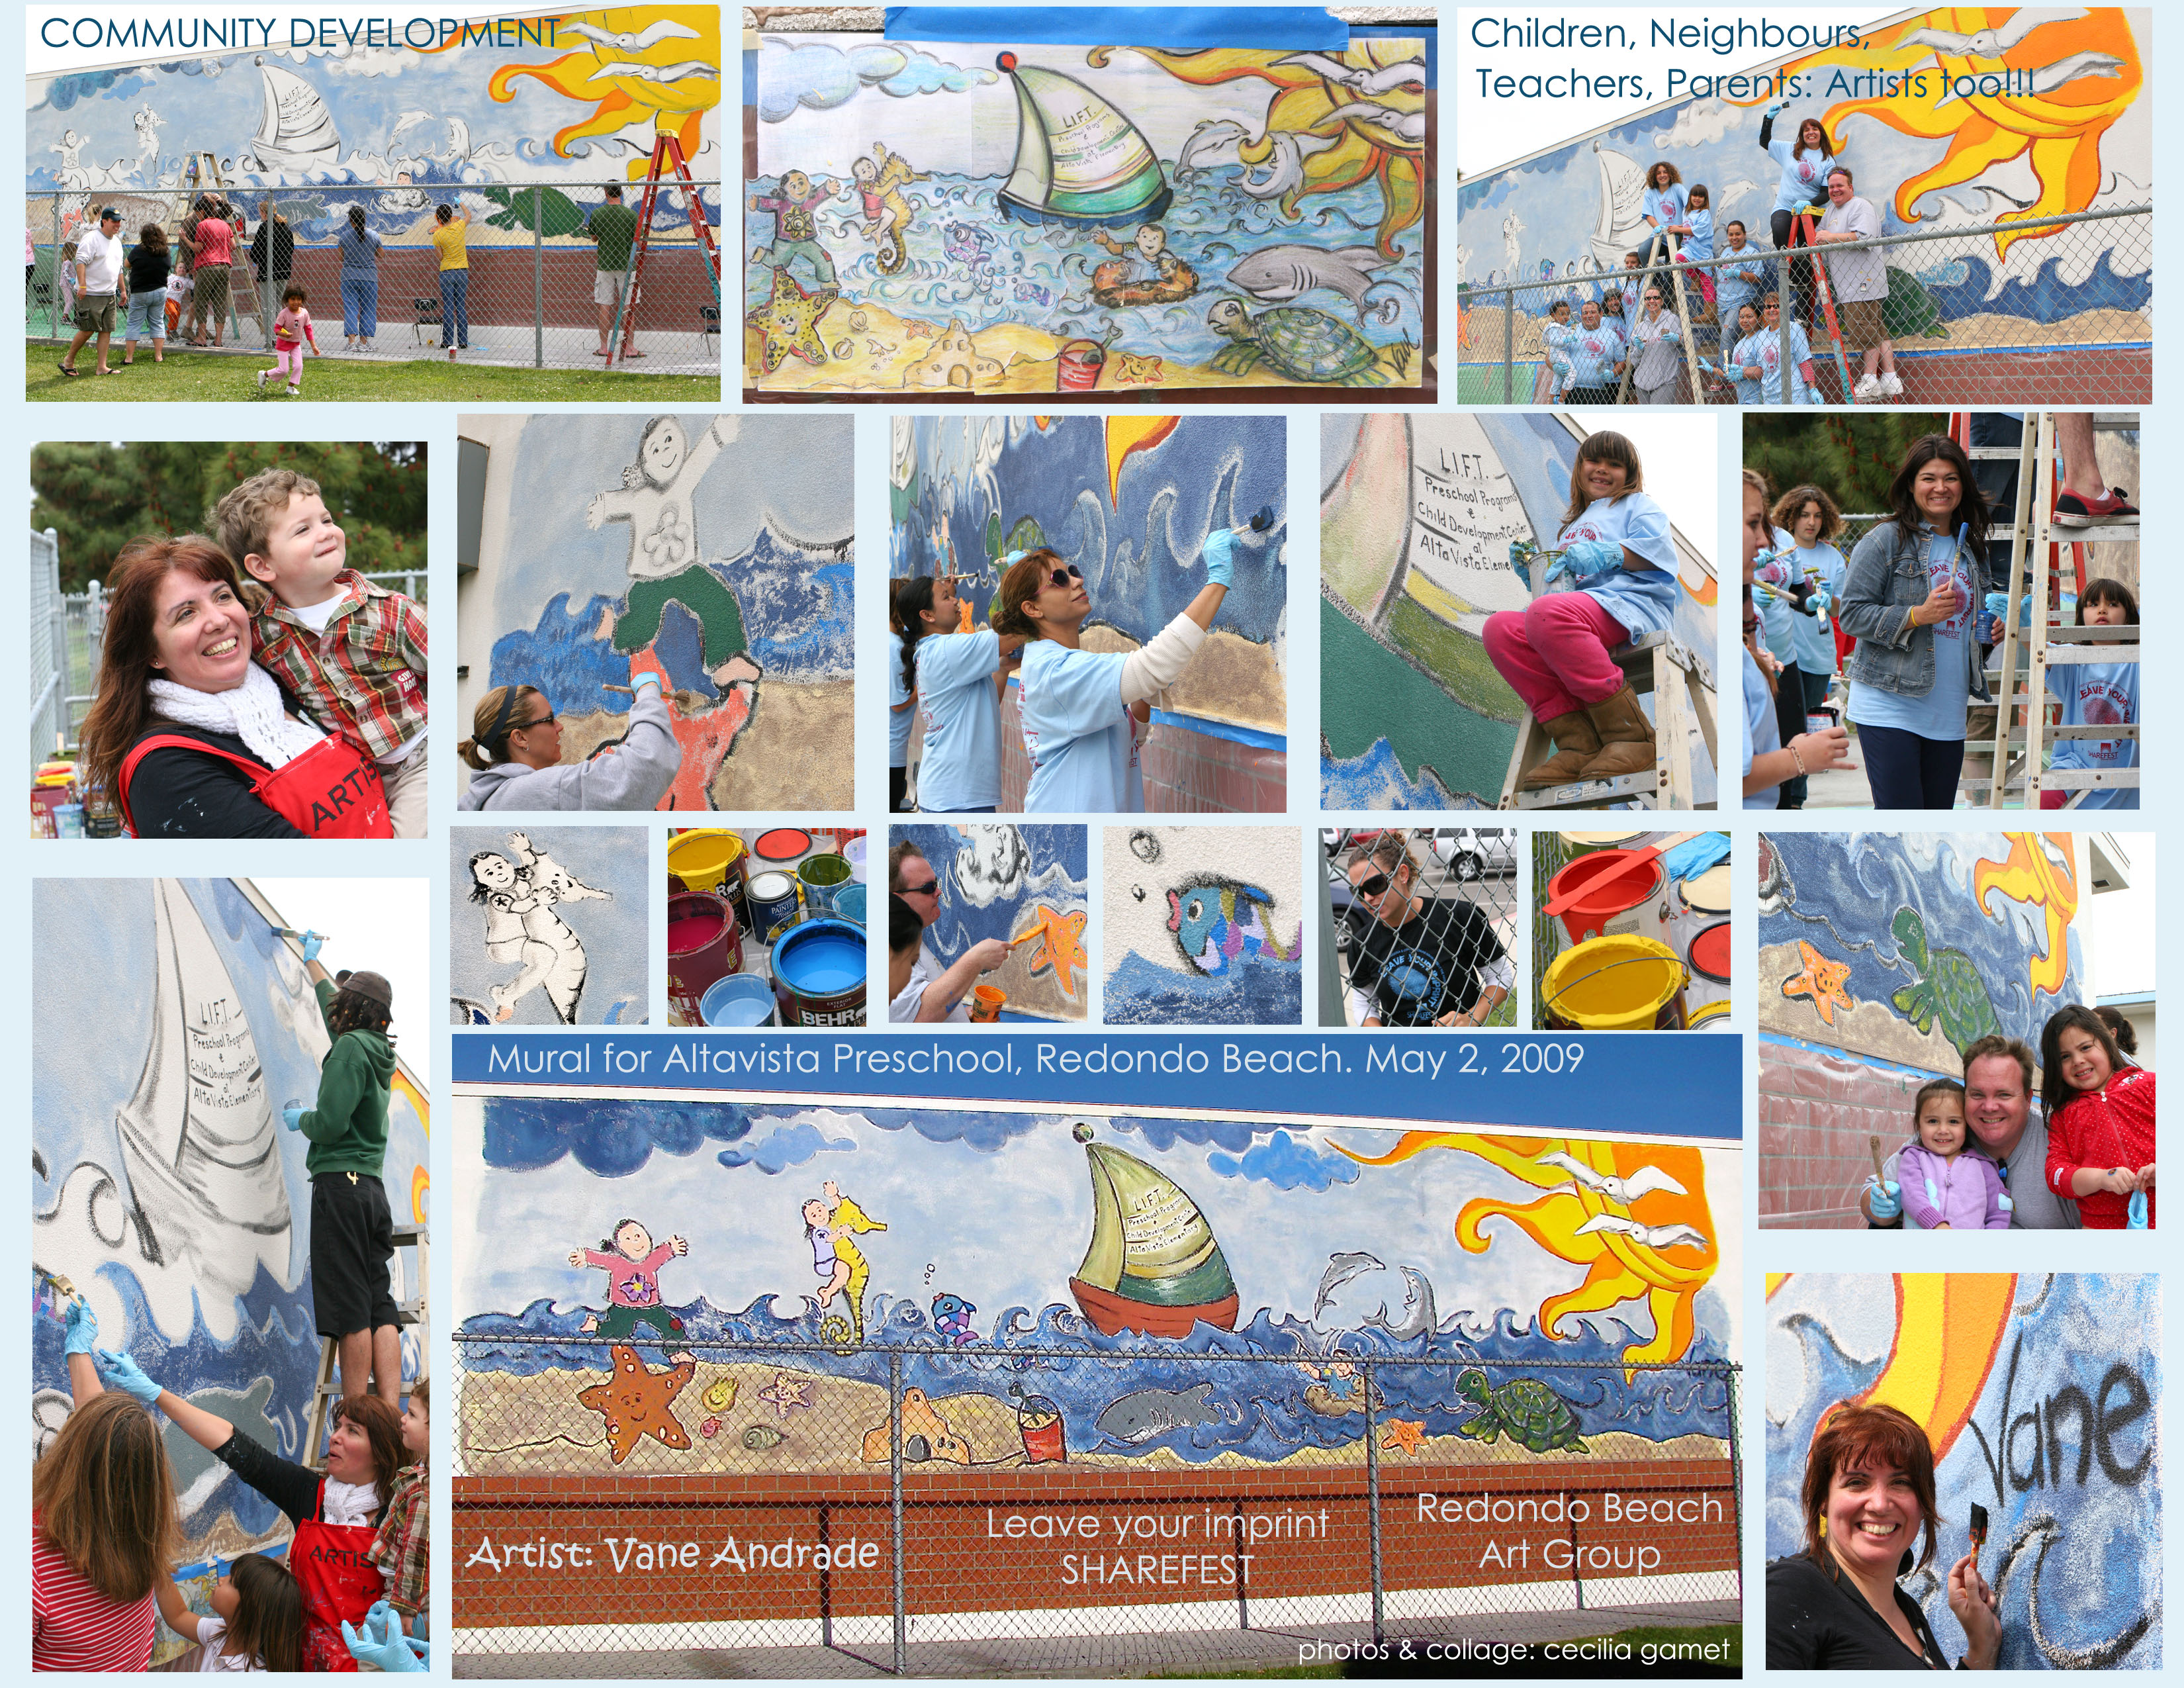 Vane Andrade's murals for ShareFest